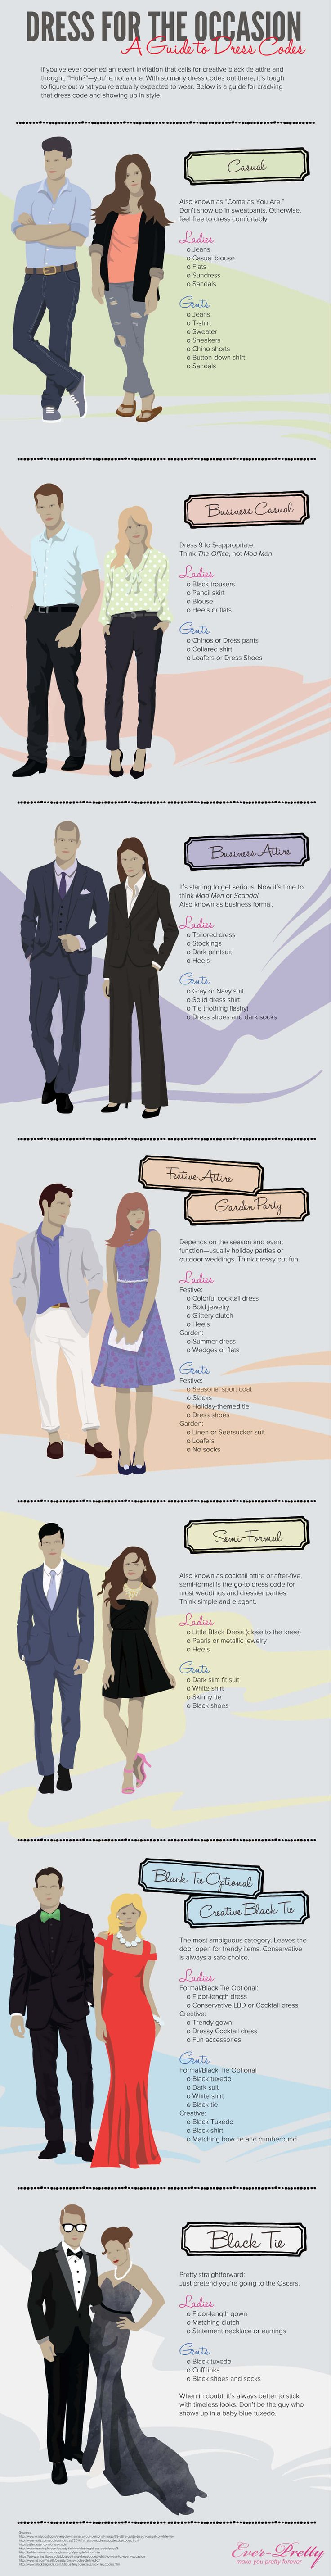 Dress for the Occasion A Guide to Dress Codes